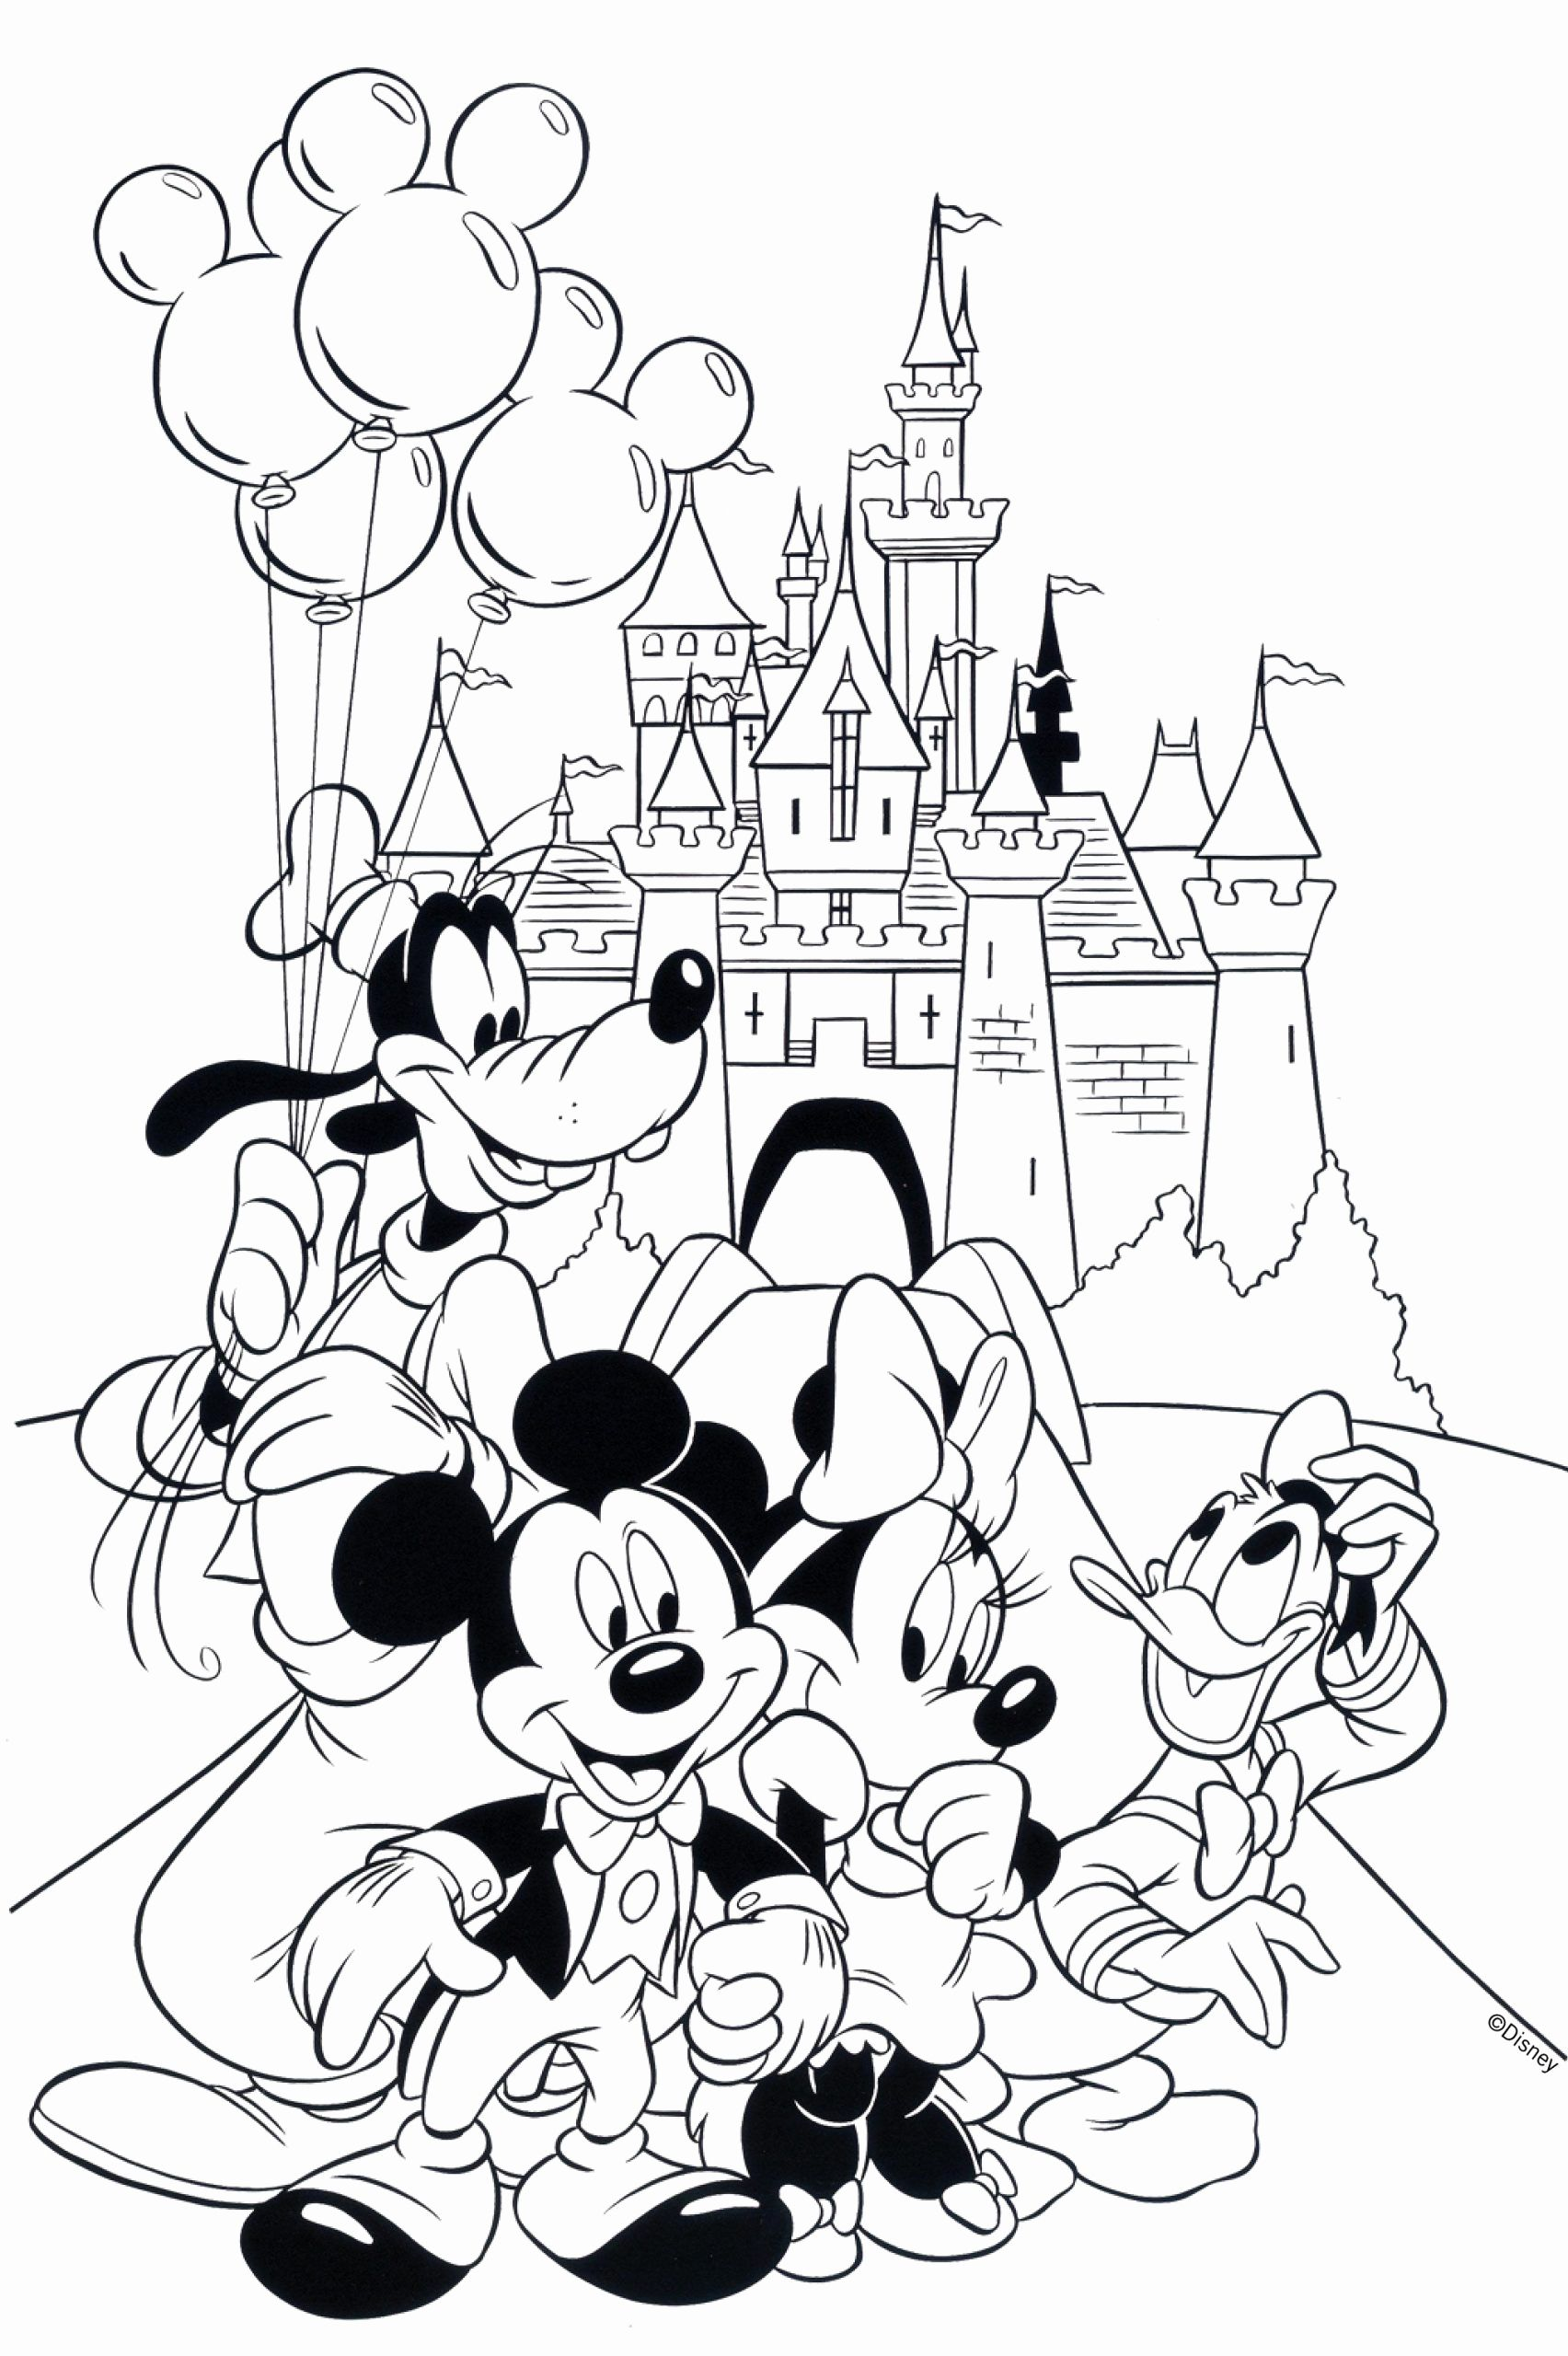 Disney Free Coloring Pages For Kids Disney Coloring Pages Disney Coloring Sheets Minnie Mouse Coloring Pages